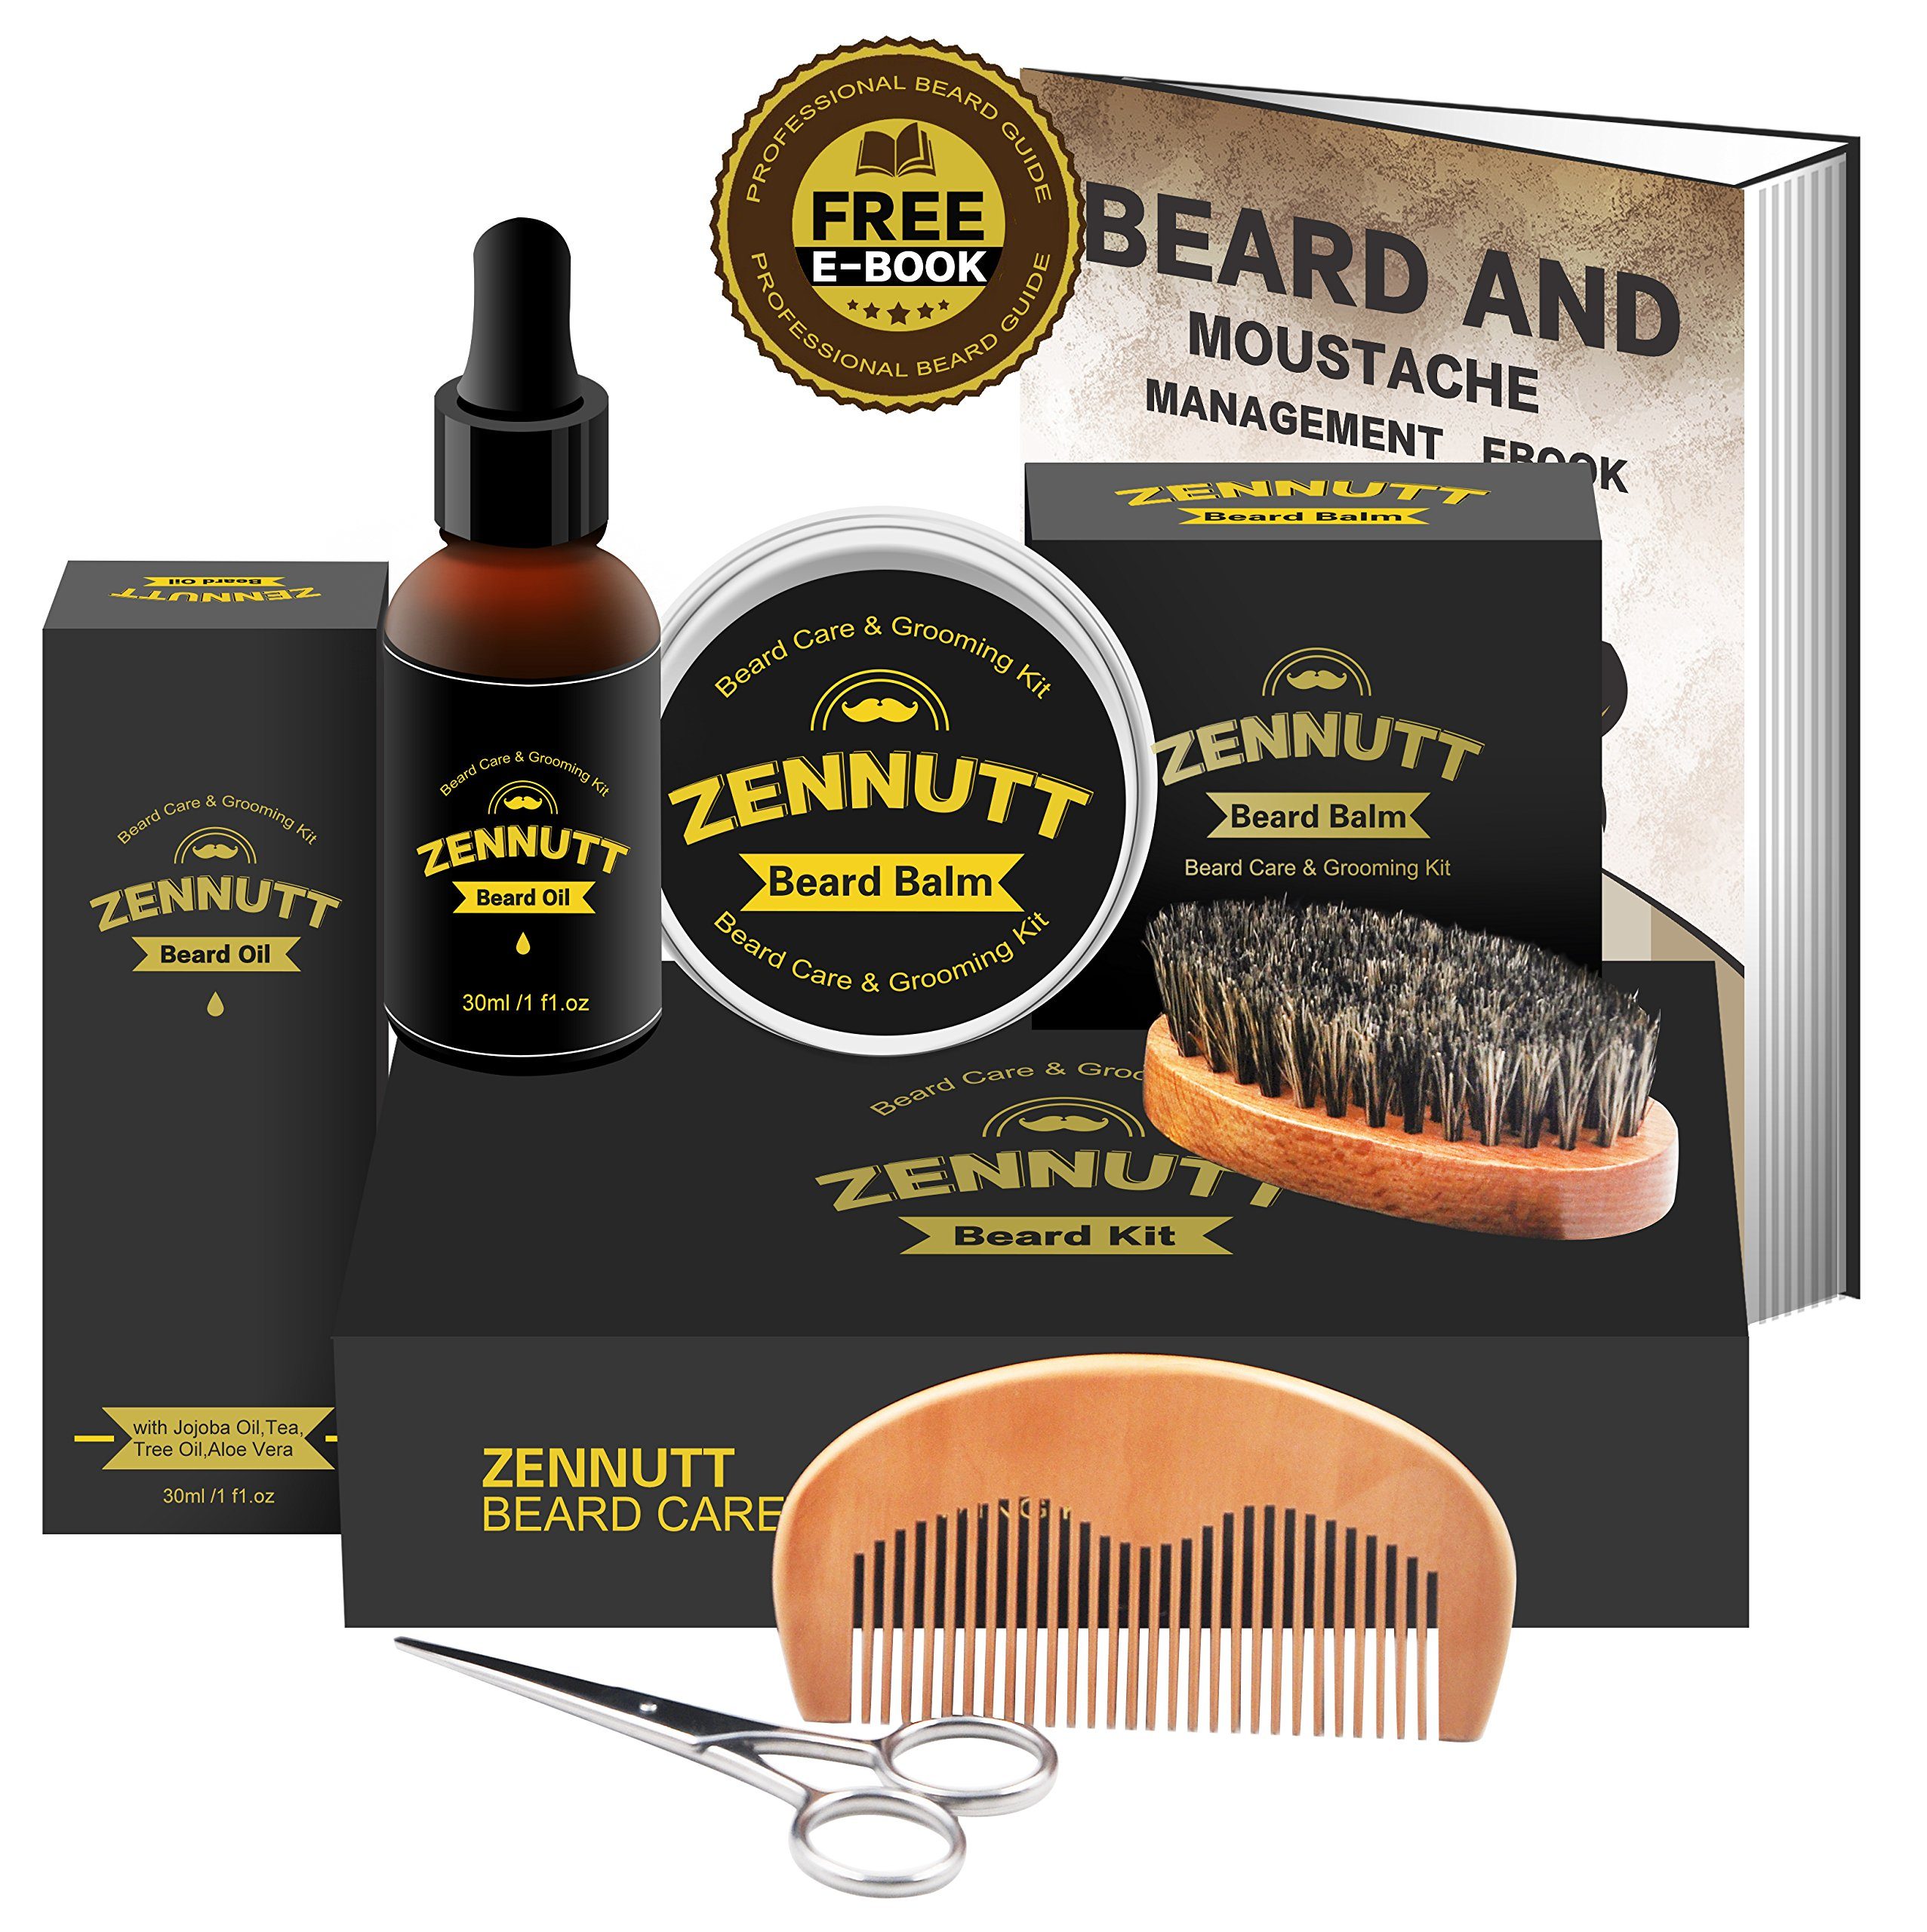 Beard Kit for Men Gifts Beard Grooming & Trimming Kit w/Unscented Beard Growth Oil + Balm + Beard Brush + Beard Comb + Beard & Mustache Scissors for Beard Trimmer Shaping Moisturizing